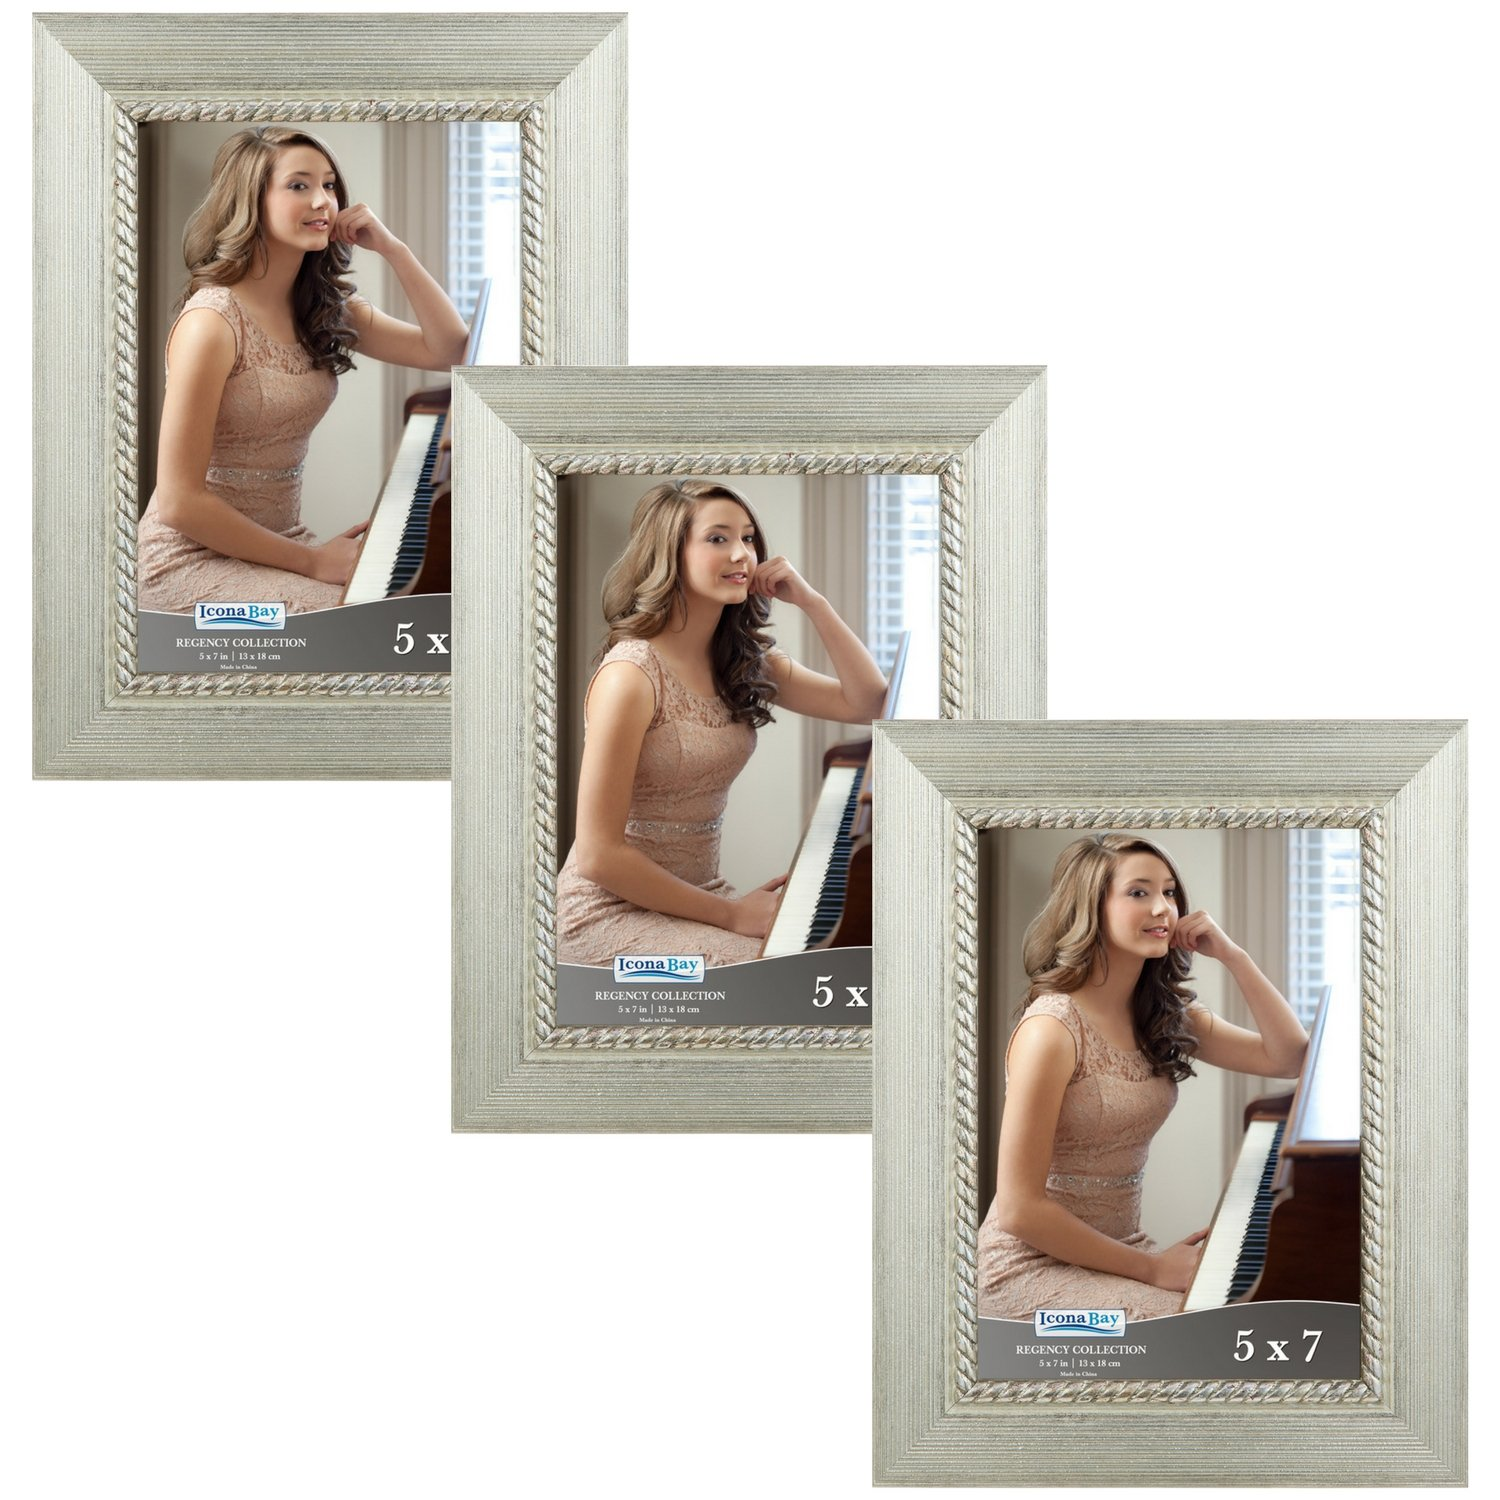 Icona Bay 5x7 Picture Frame (3 Pack, Silver), Silver Photo Frame 5 x 7, Wall Mount or Table Top, Set of 3 Regency Collection by Icona Bay